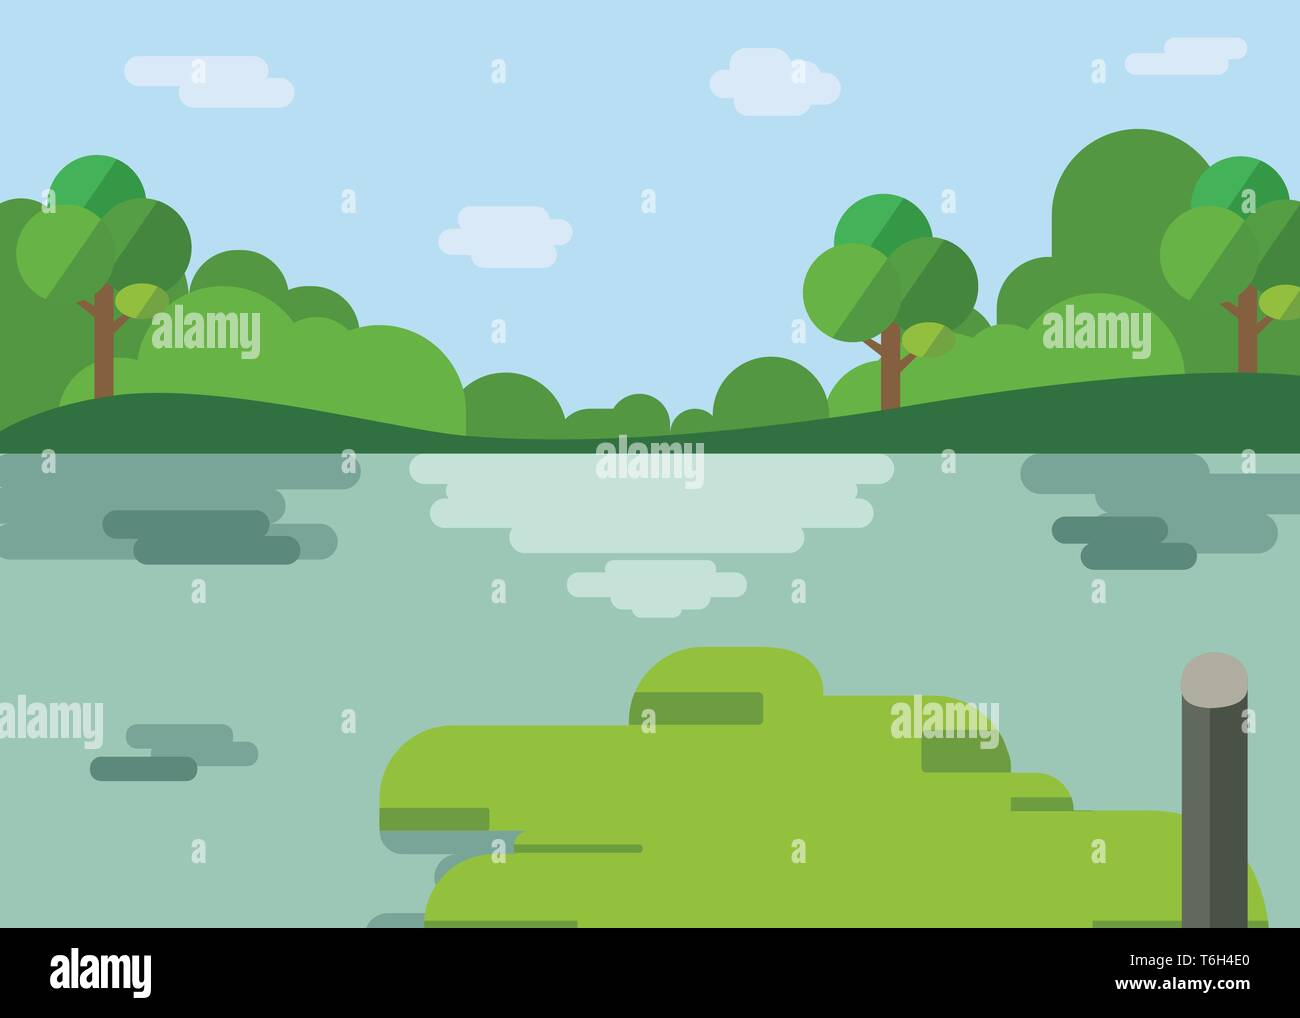 Nature Landscape Cartoon Design Beautiful Lake With Forest In Flat Style River With Hills Trees Clouds And Sky Background Stock Vector Image Art Alamy Find & download free graphic resources for trees cartoon. https www alamy com nature landscape cartoon designbeautiful lake with forest in flat styleriver with hills trees clouds and sky background image245009800 html